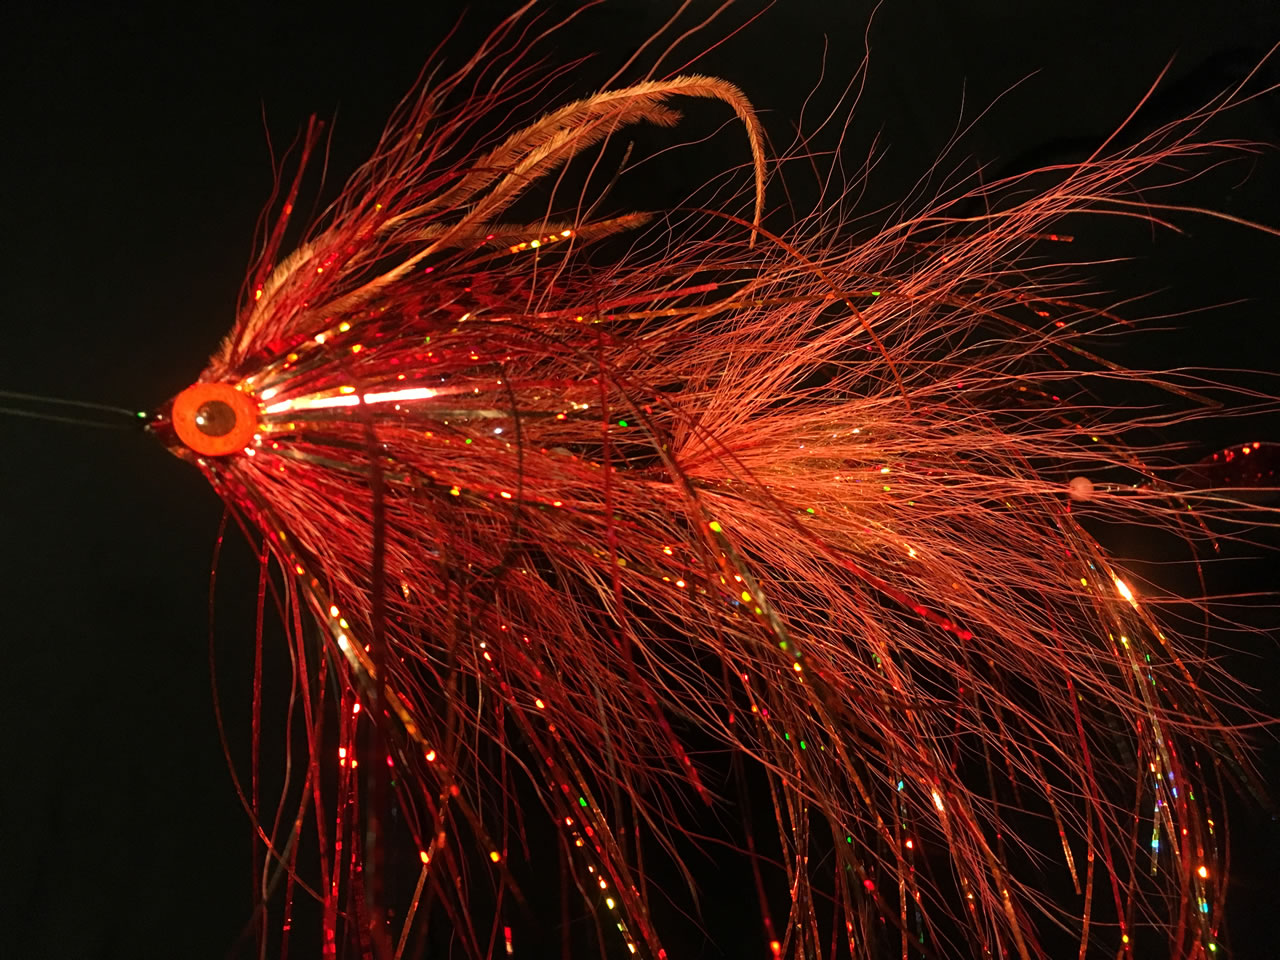 Big Red Head - articulated pike fly